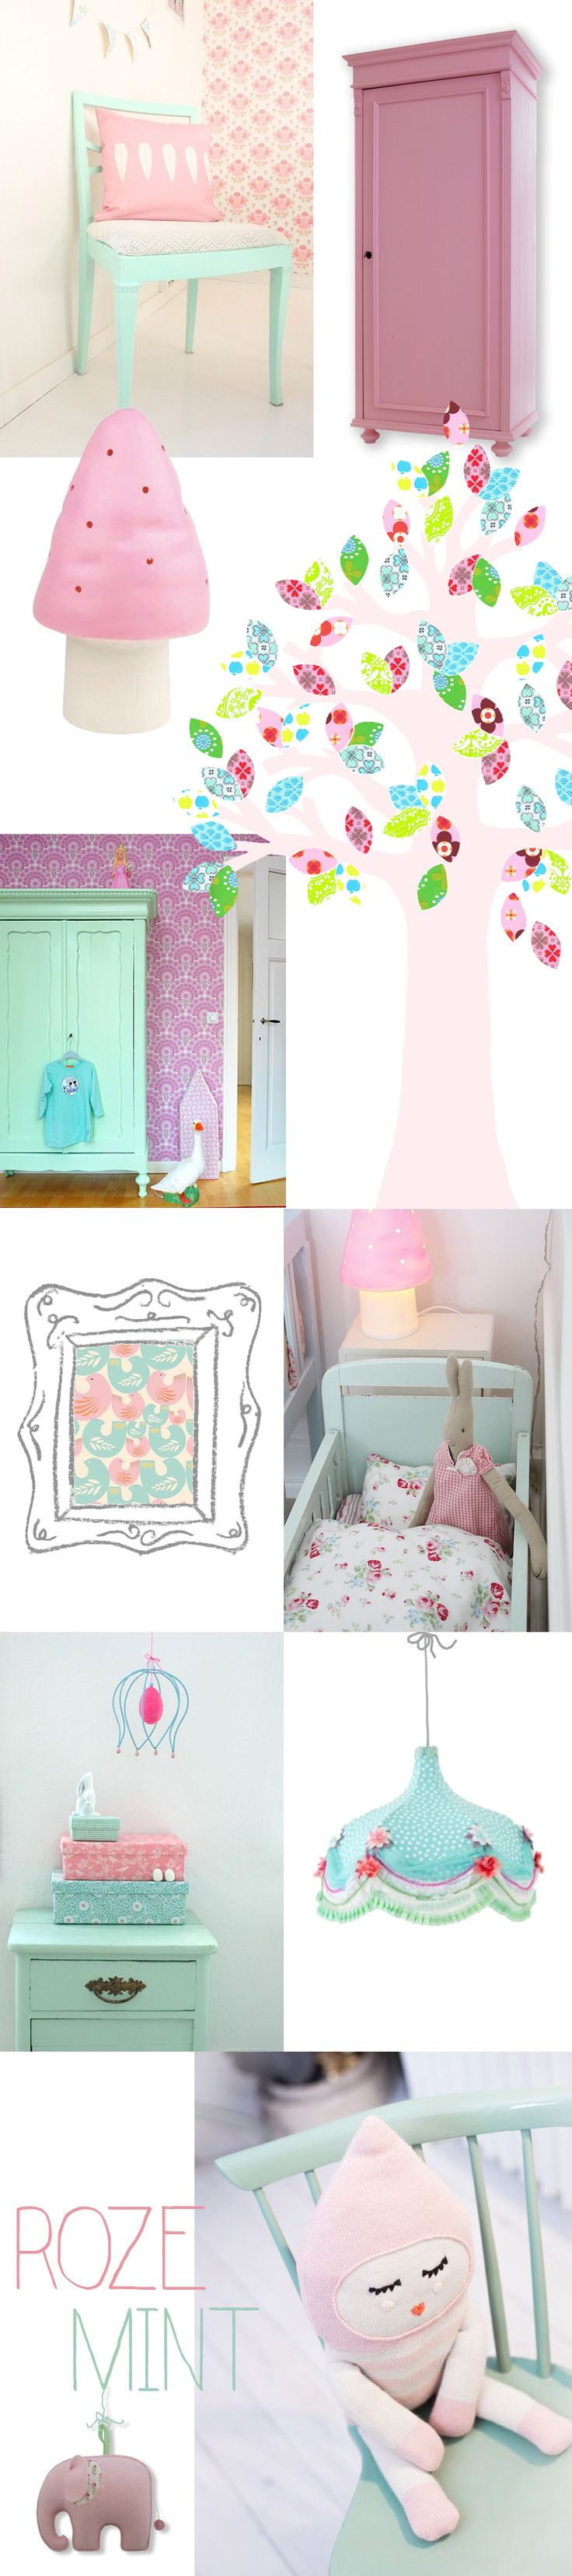 ... pink forward room seven behang mon amour beige behang 2200113 see more